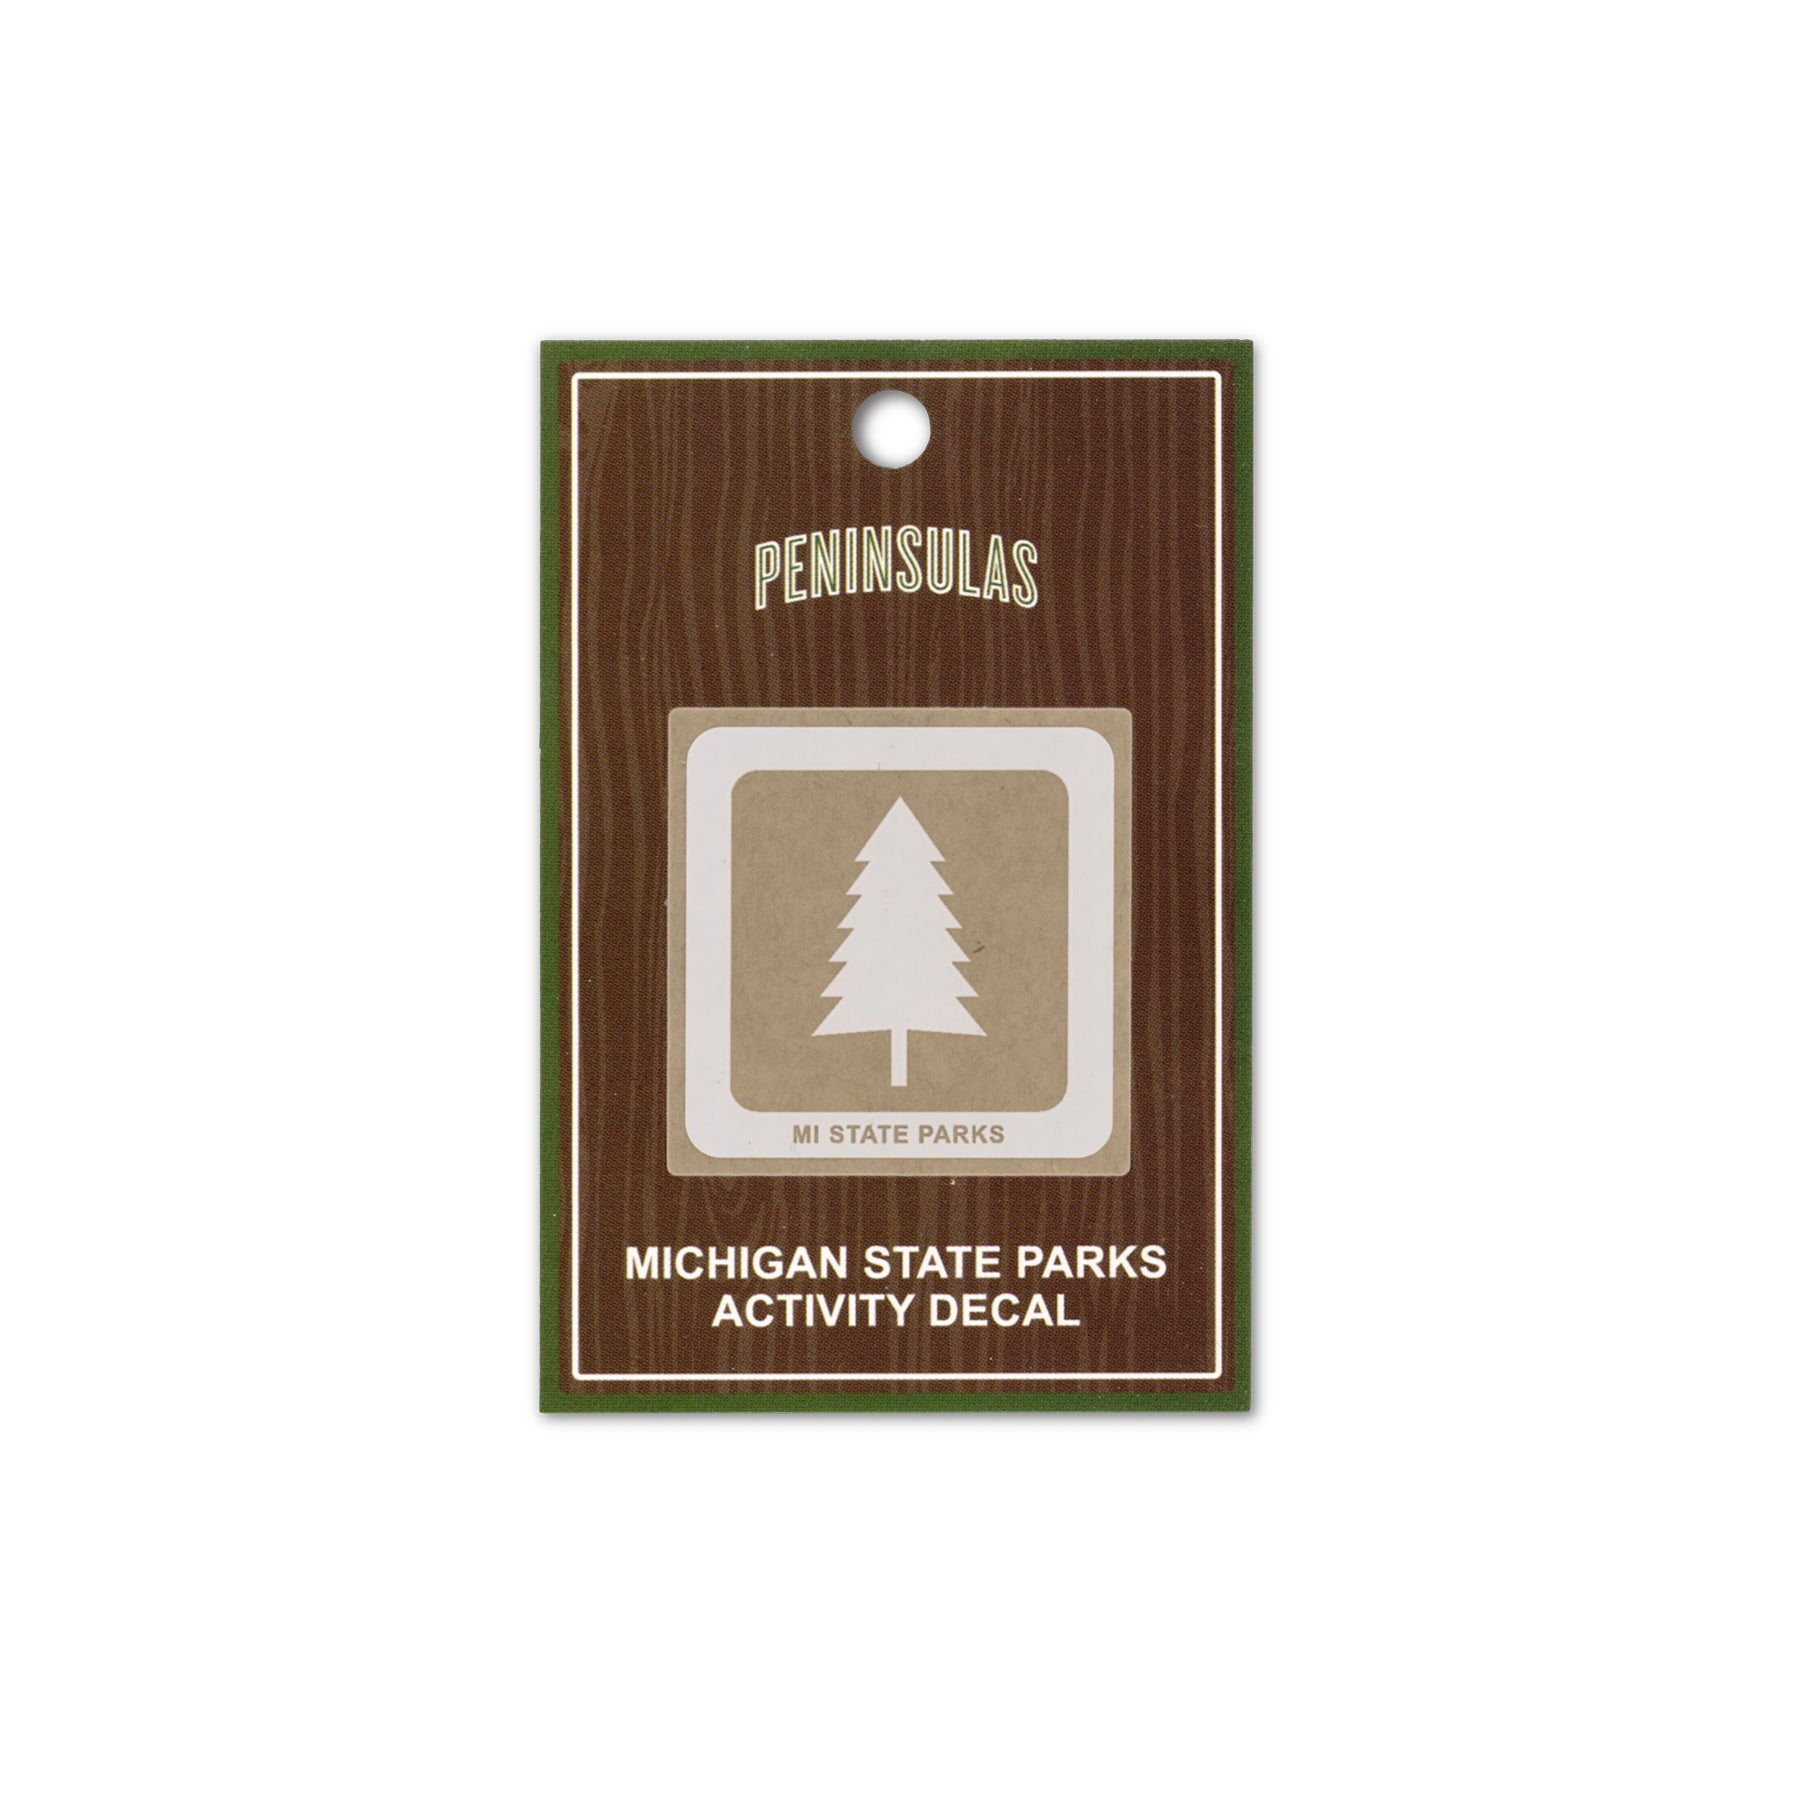 MI State Parks Activity Decal - Wilderness